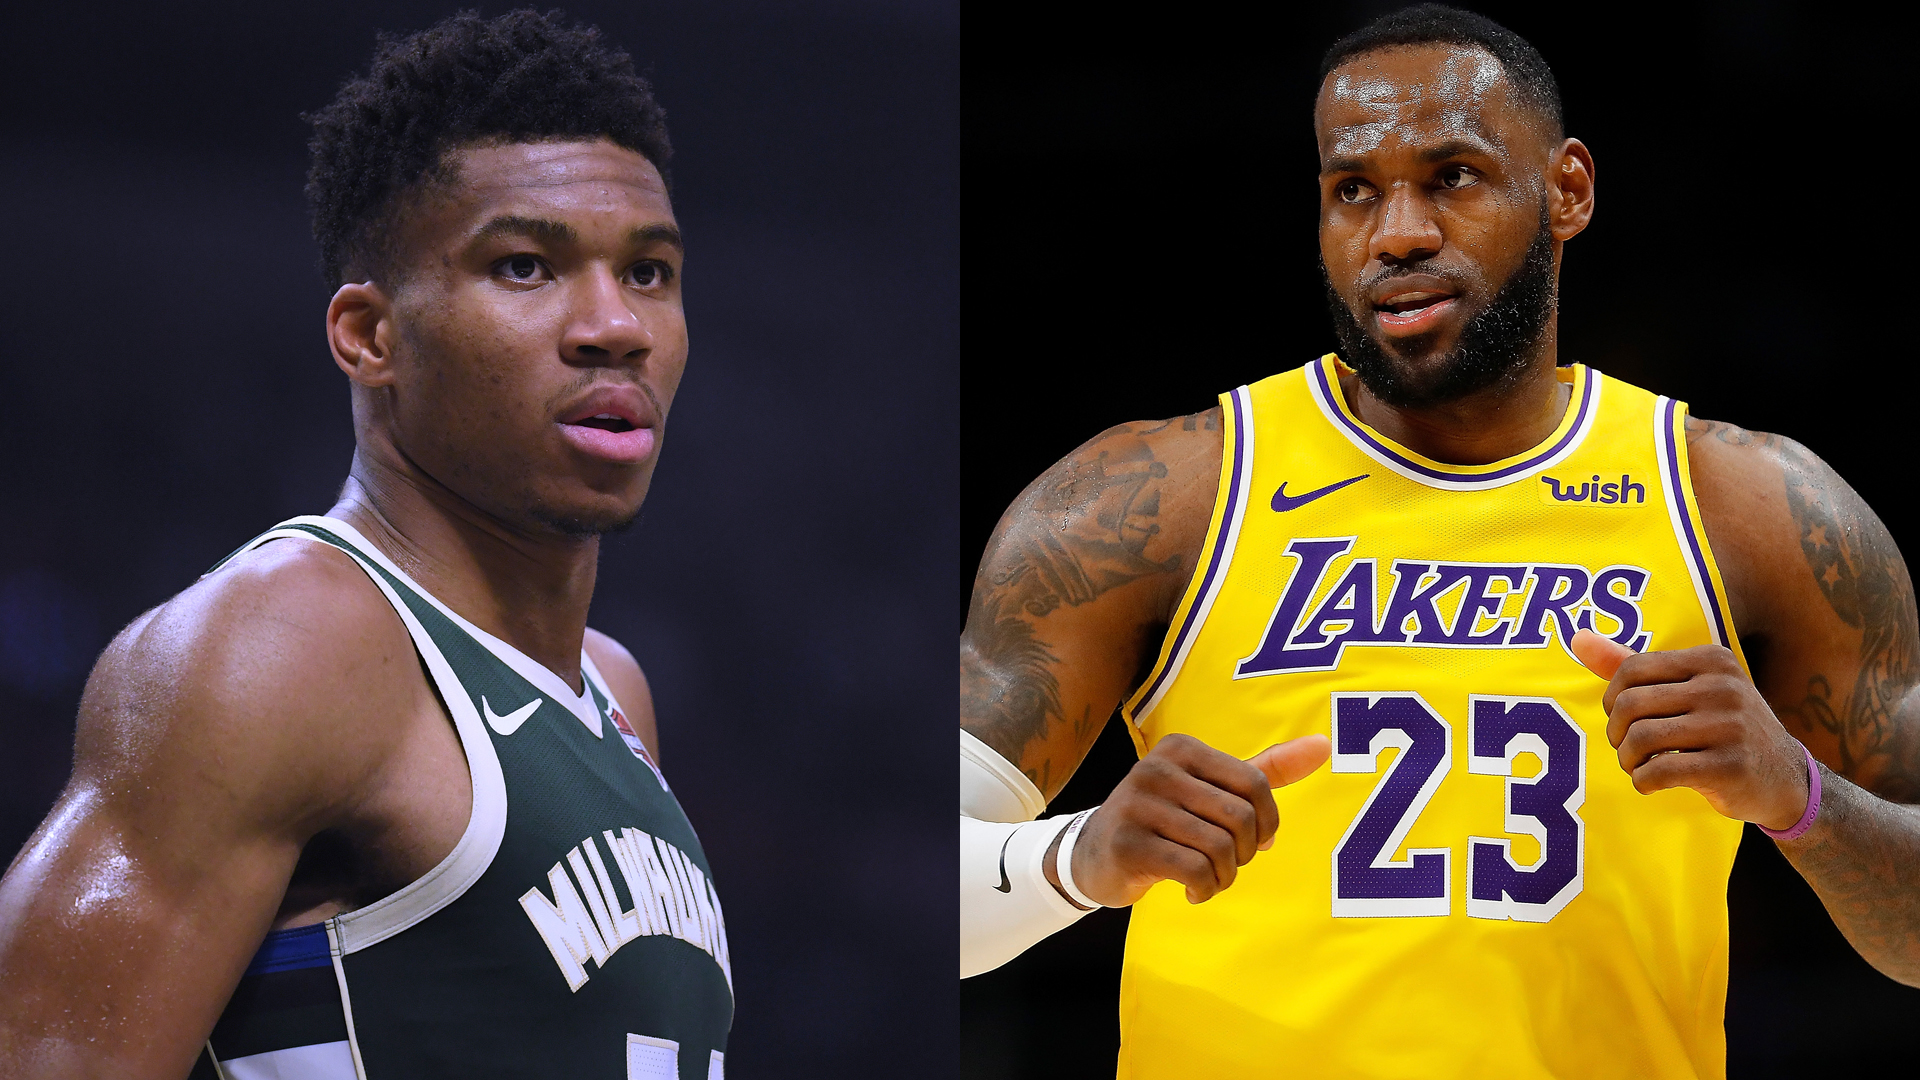 A combined 48-8 record as LeBron and Giannis go head-to-head – Lakers v Bucks in numbers